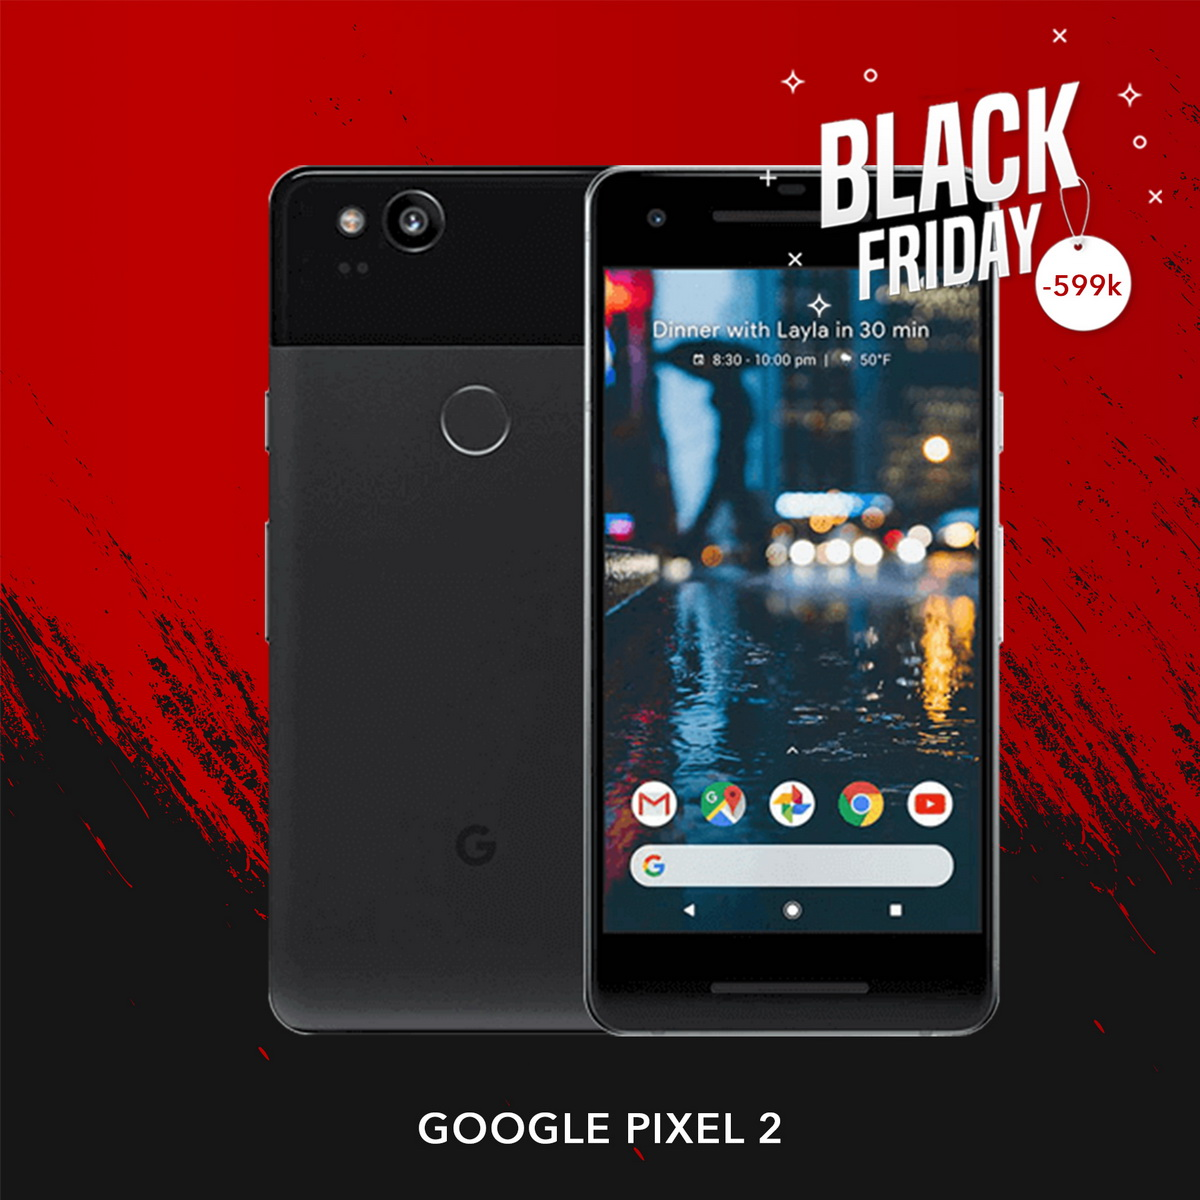 Google Pixel 2 |  Black Friday